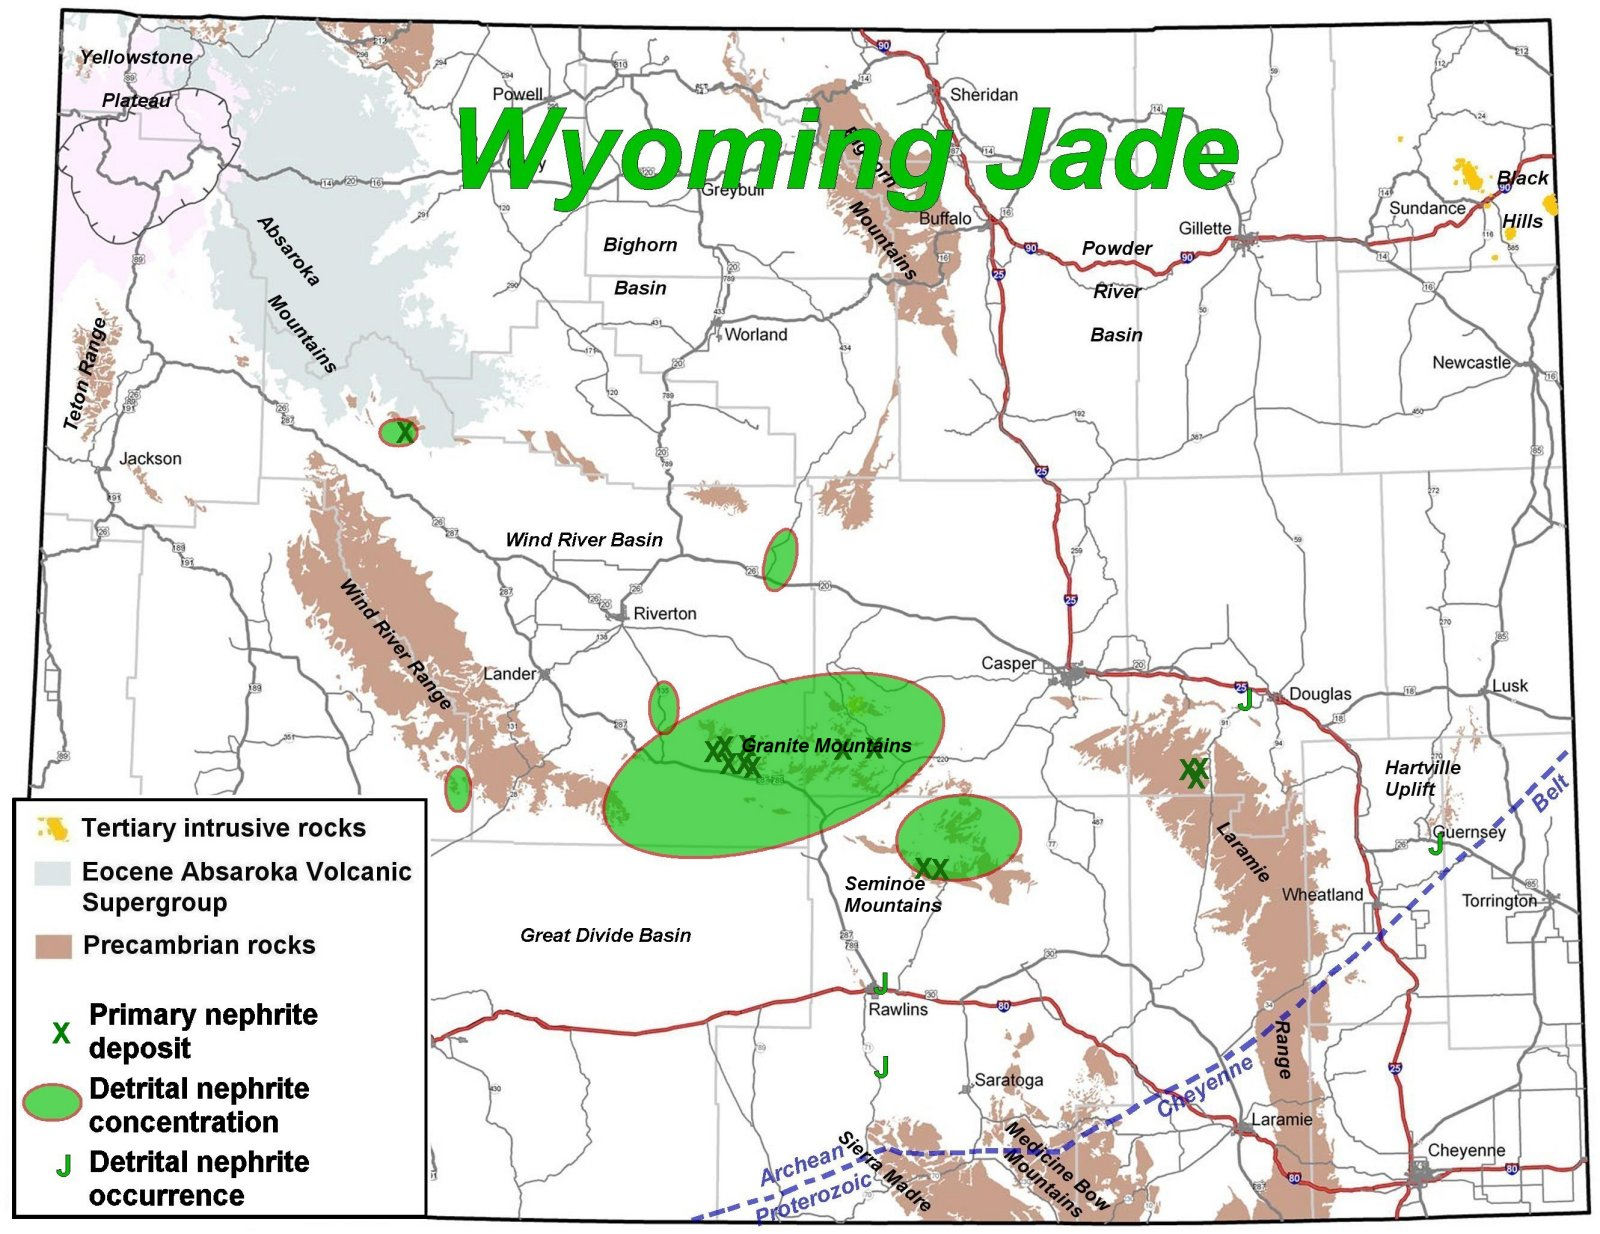 Click image for larger version  Name:WyomingJade-Small.jpg Views:522 Size:341.0 KB ID:191387